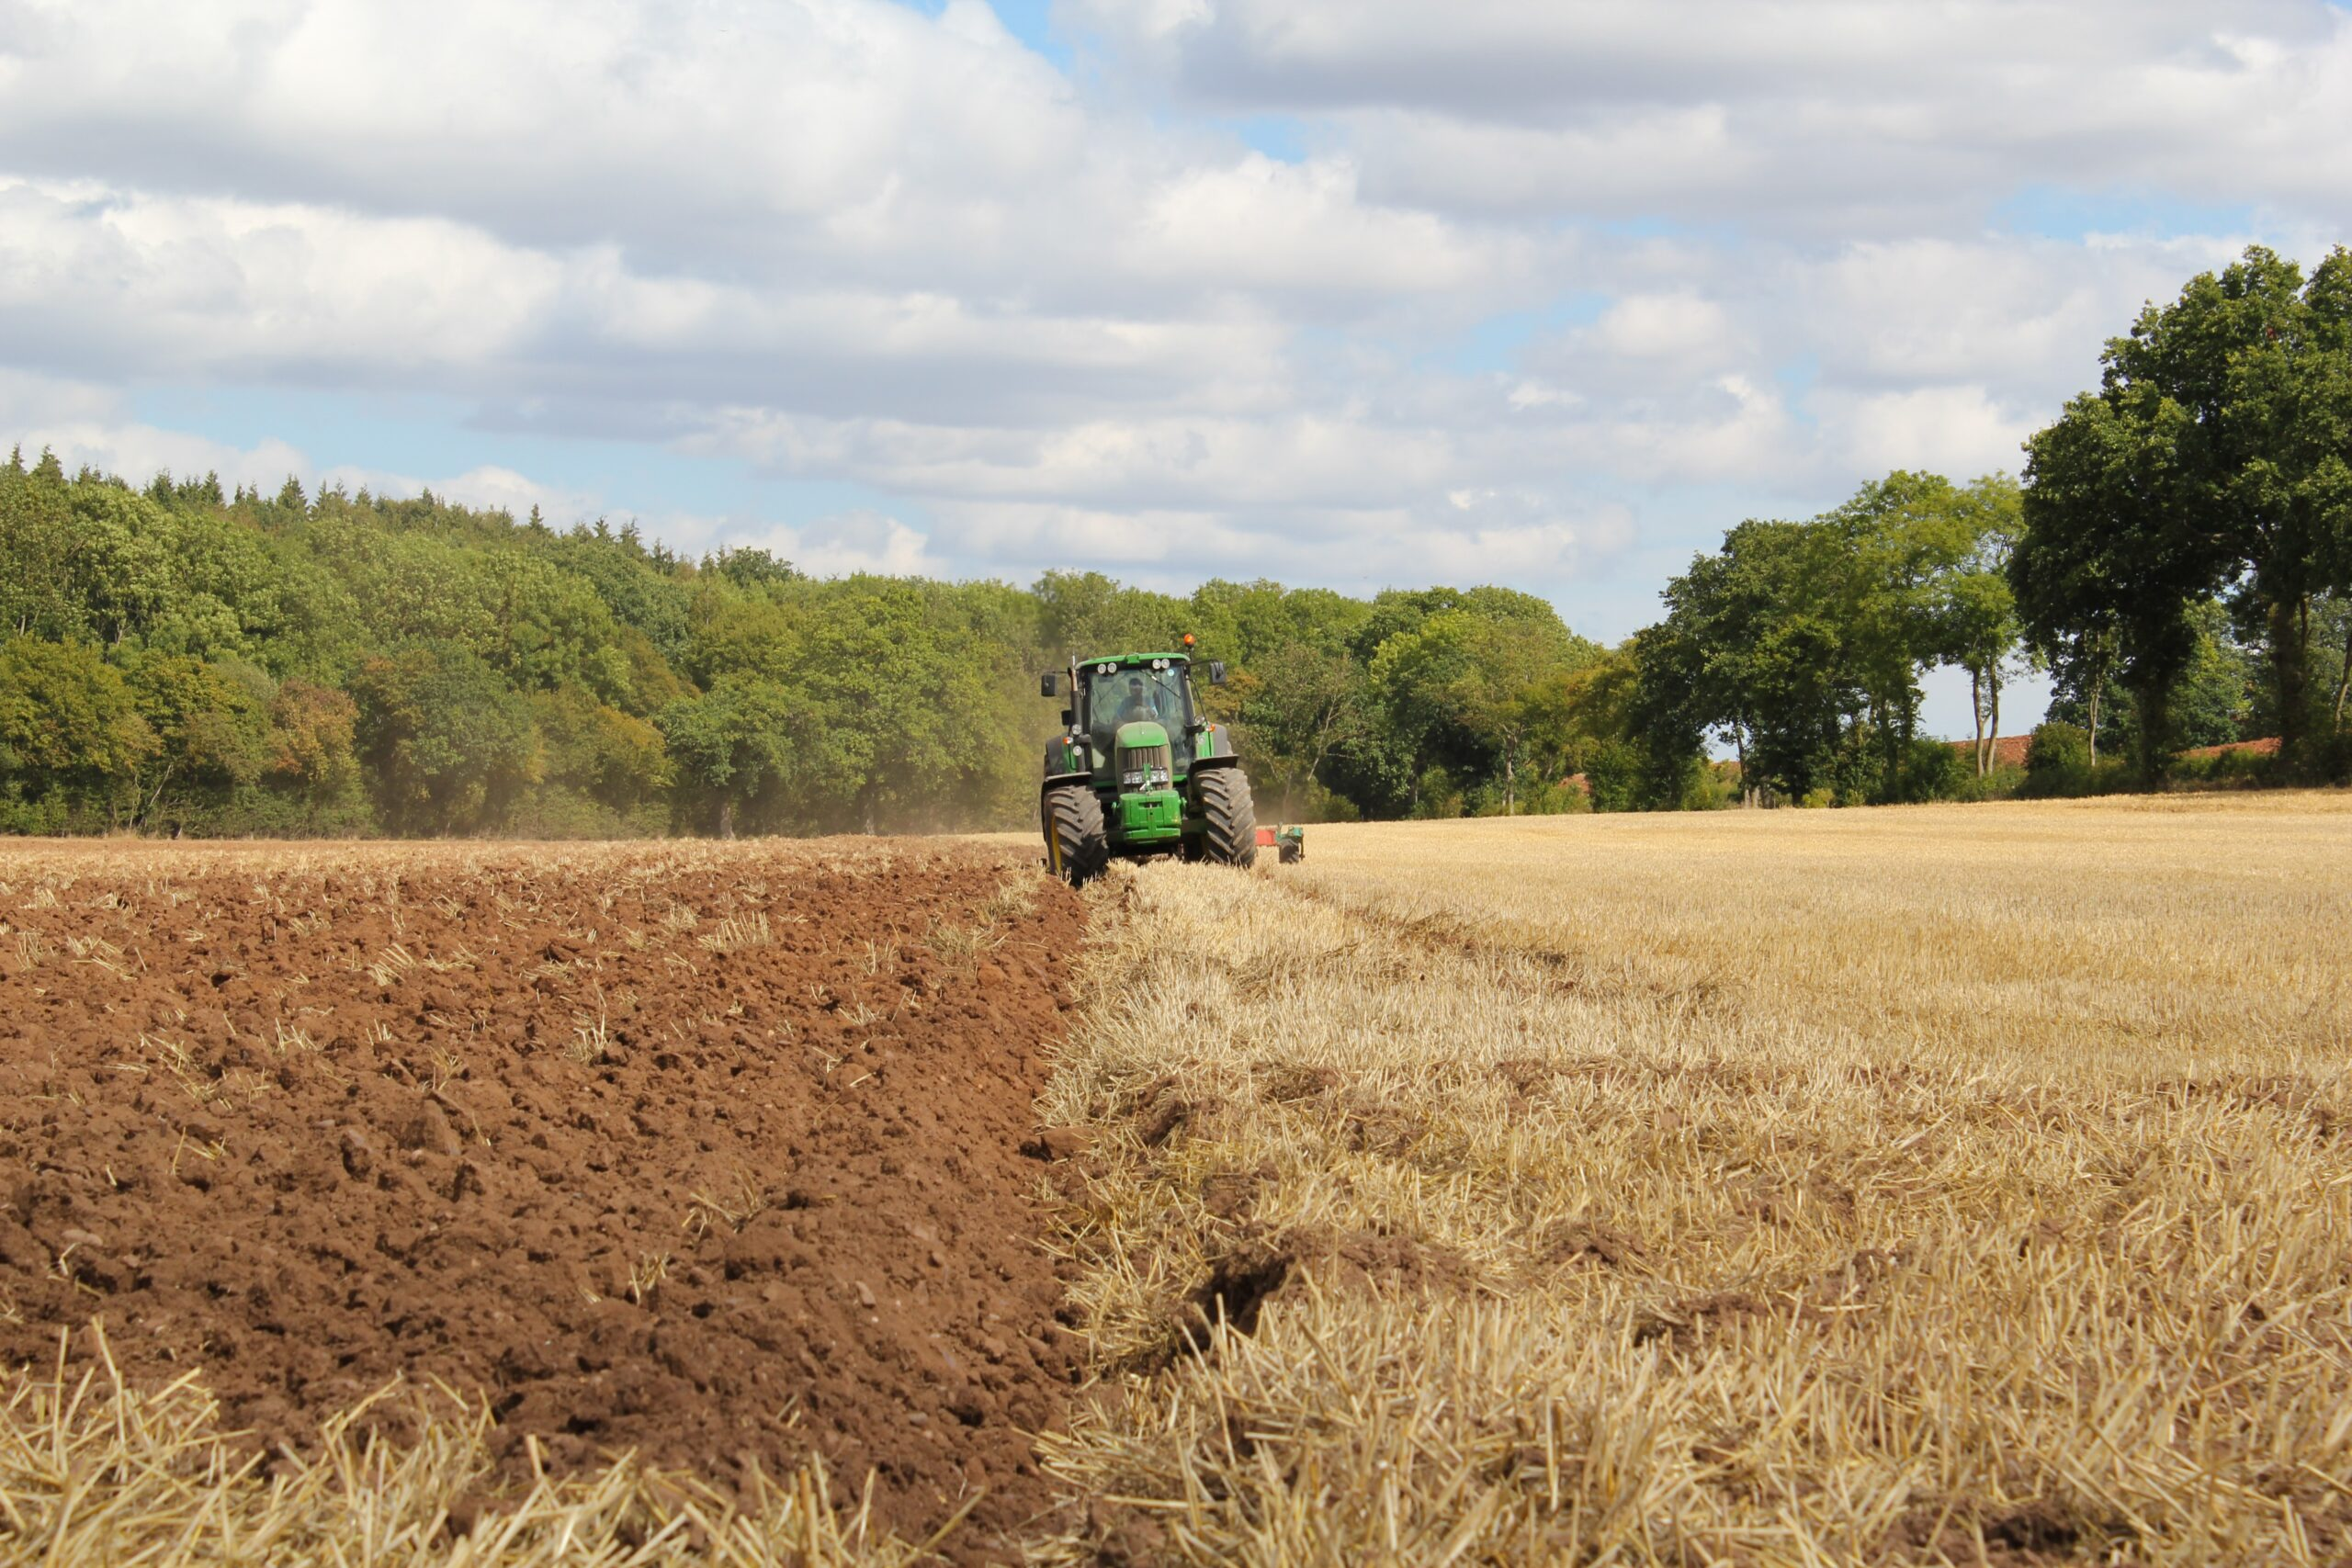 https://dslaw.ie/wp-content/uploads/2021/09/Tractor-Ploughing-scaled.jpg